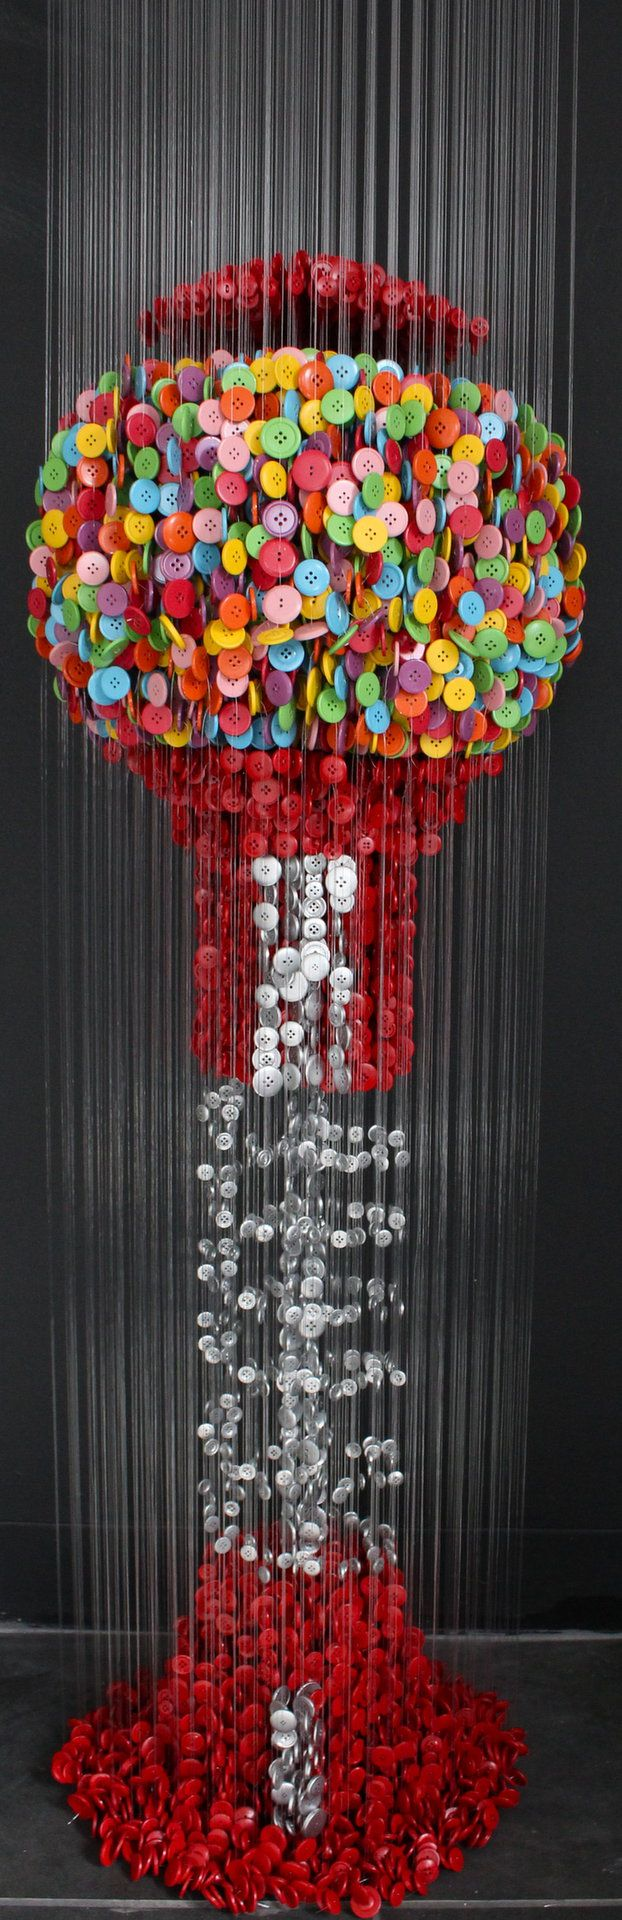 Incredible Spatial Sculptures Using Colorful Suspended Buttons - My Modern Metropolis  WOW!!!